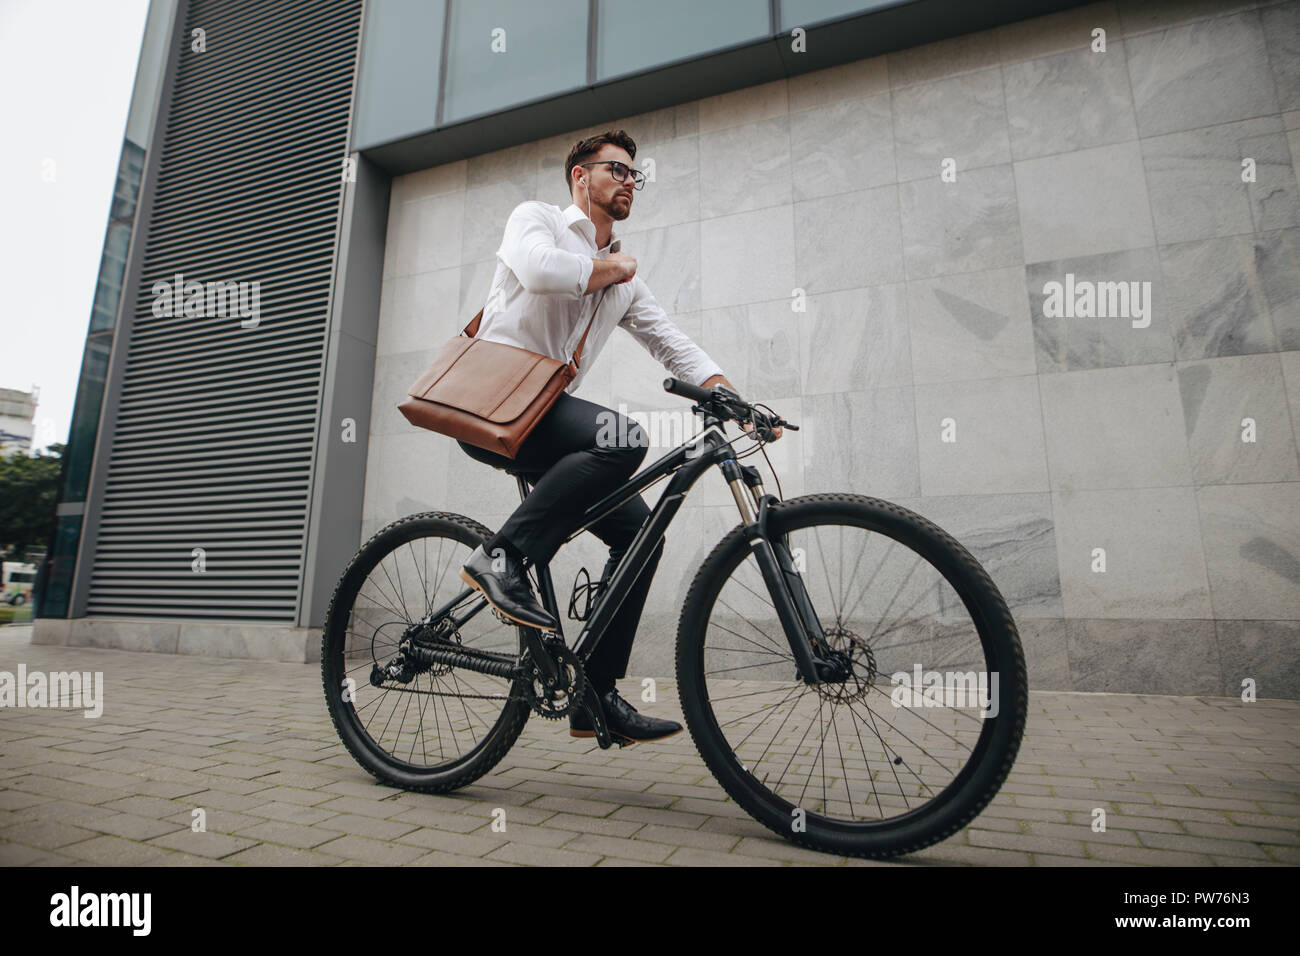 Side view of an entrepreneur commuting to office on a bike. Man wearing office bag riding a bicycle in street going to office. - Stock Image